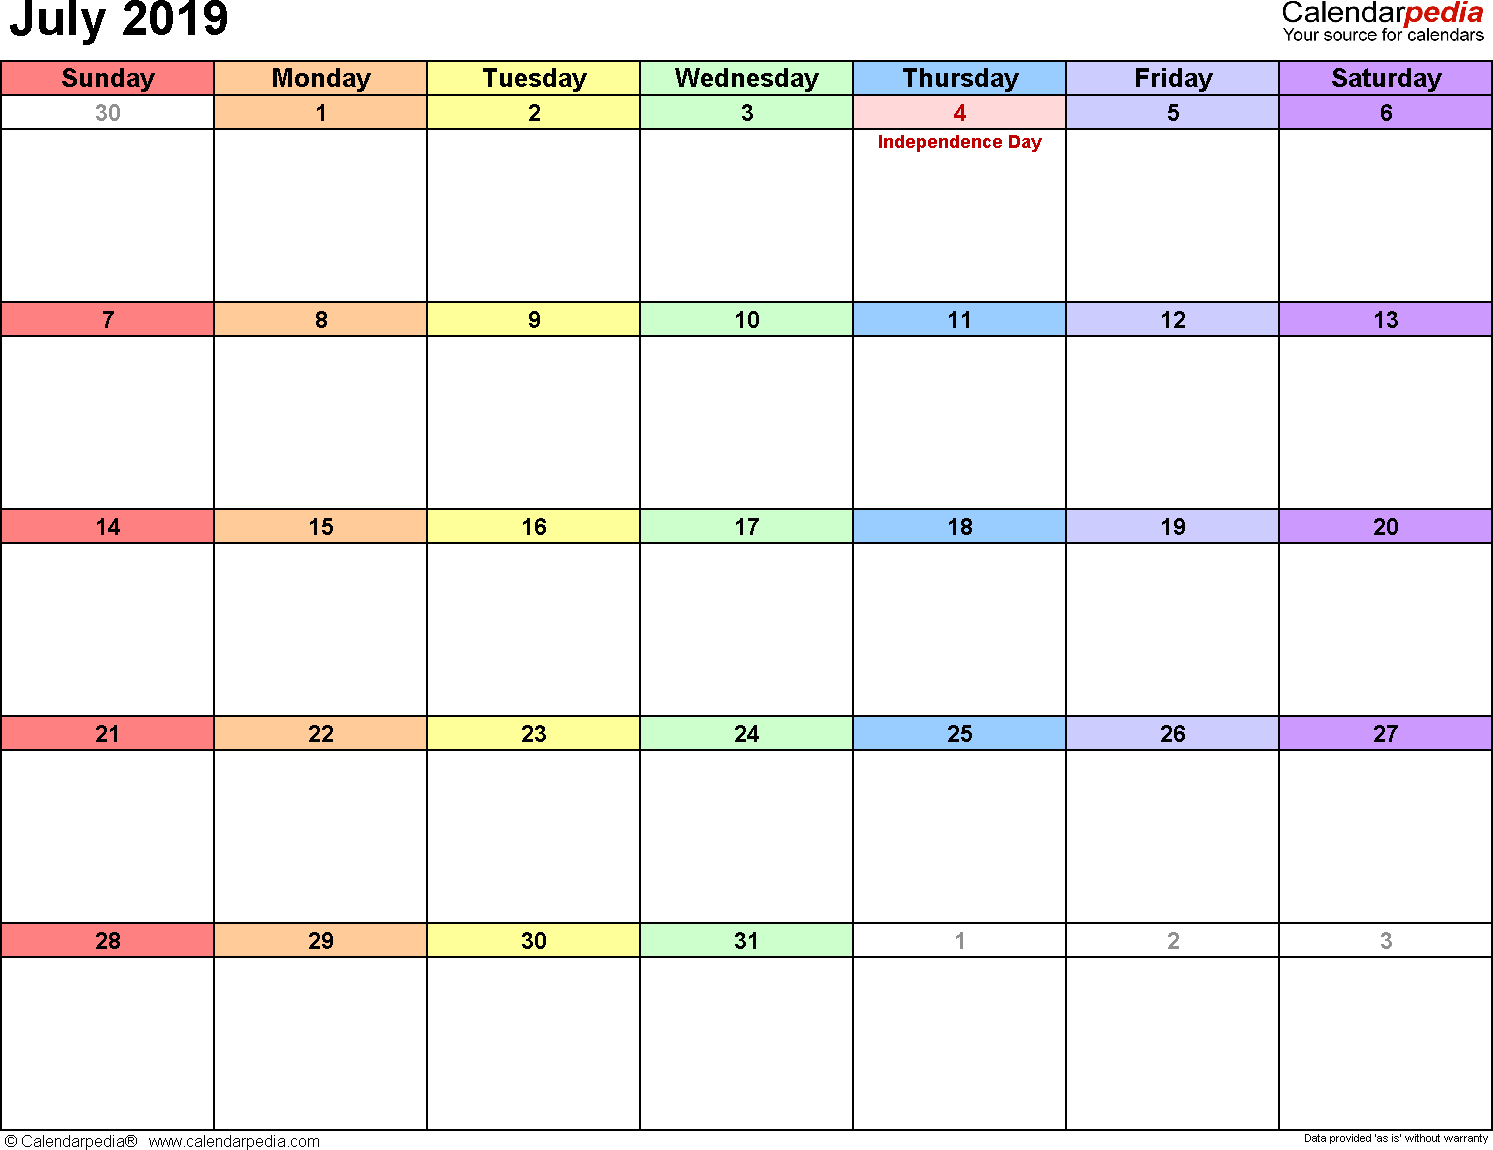 July 2019 Calendars For Word, Excel & Pdf